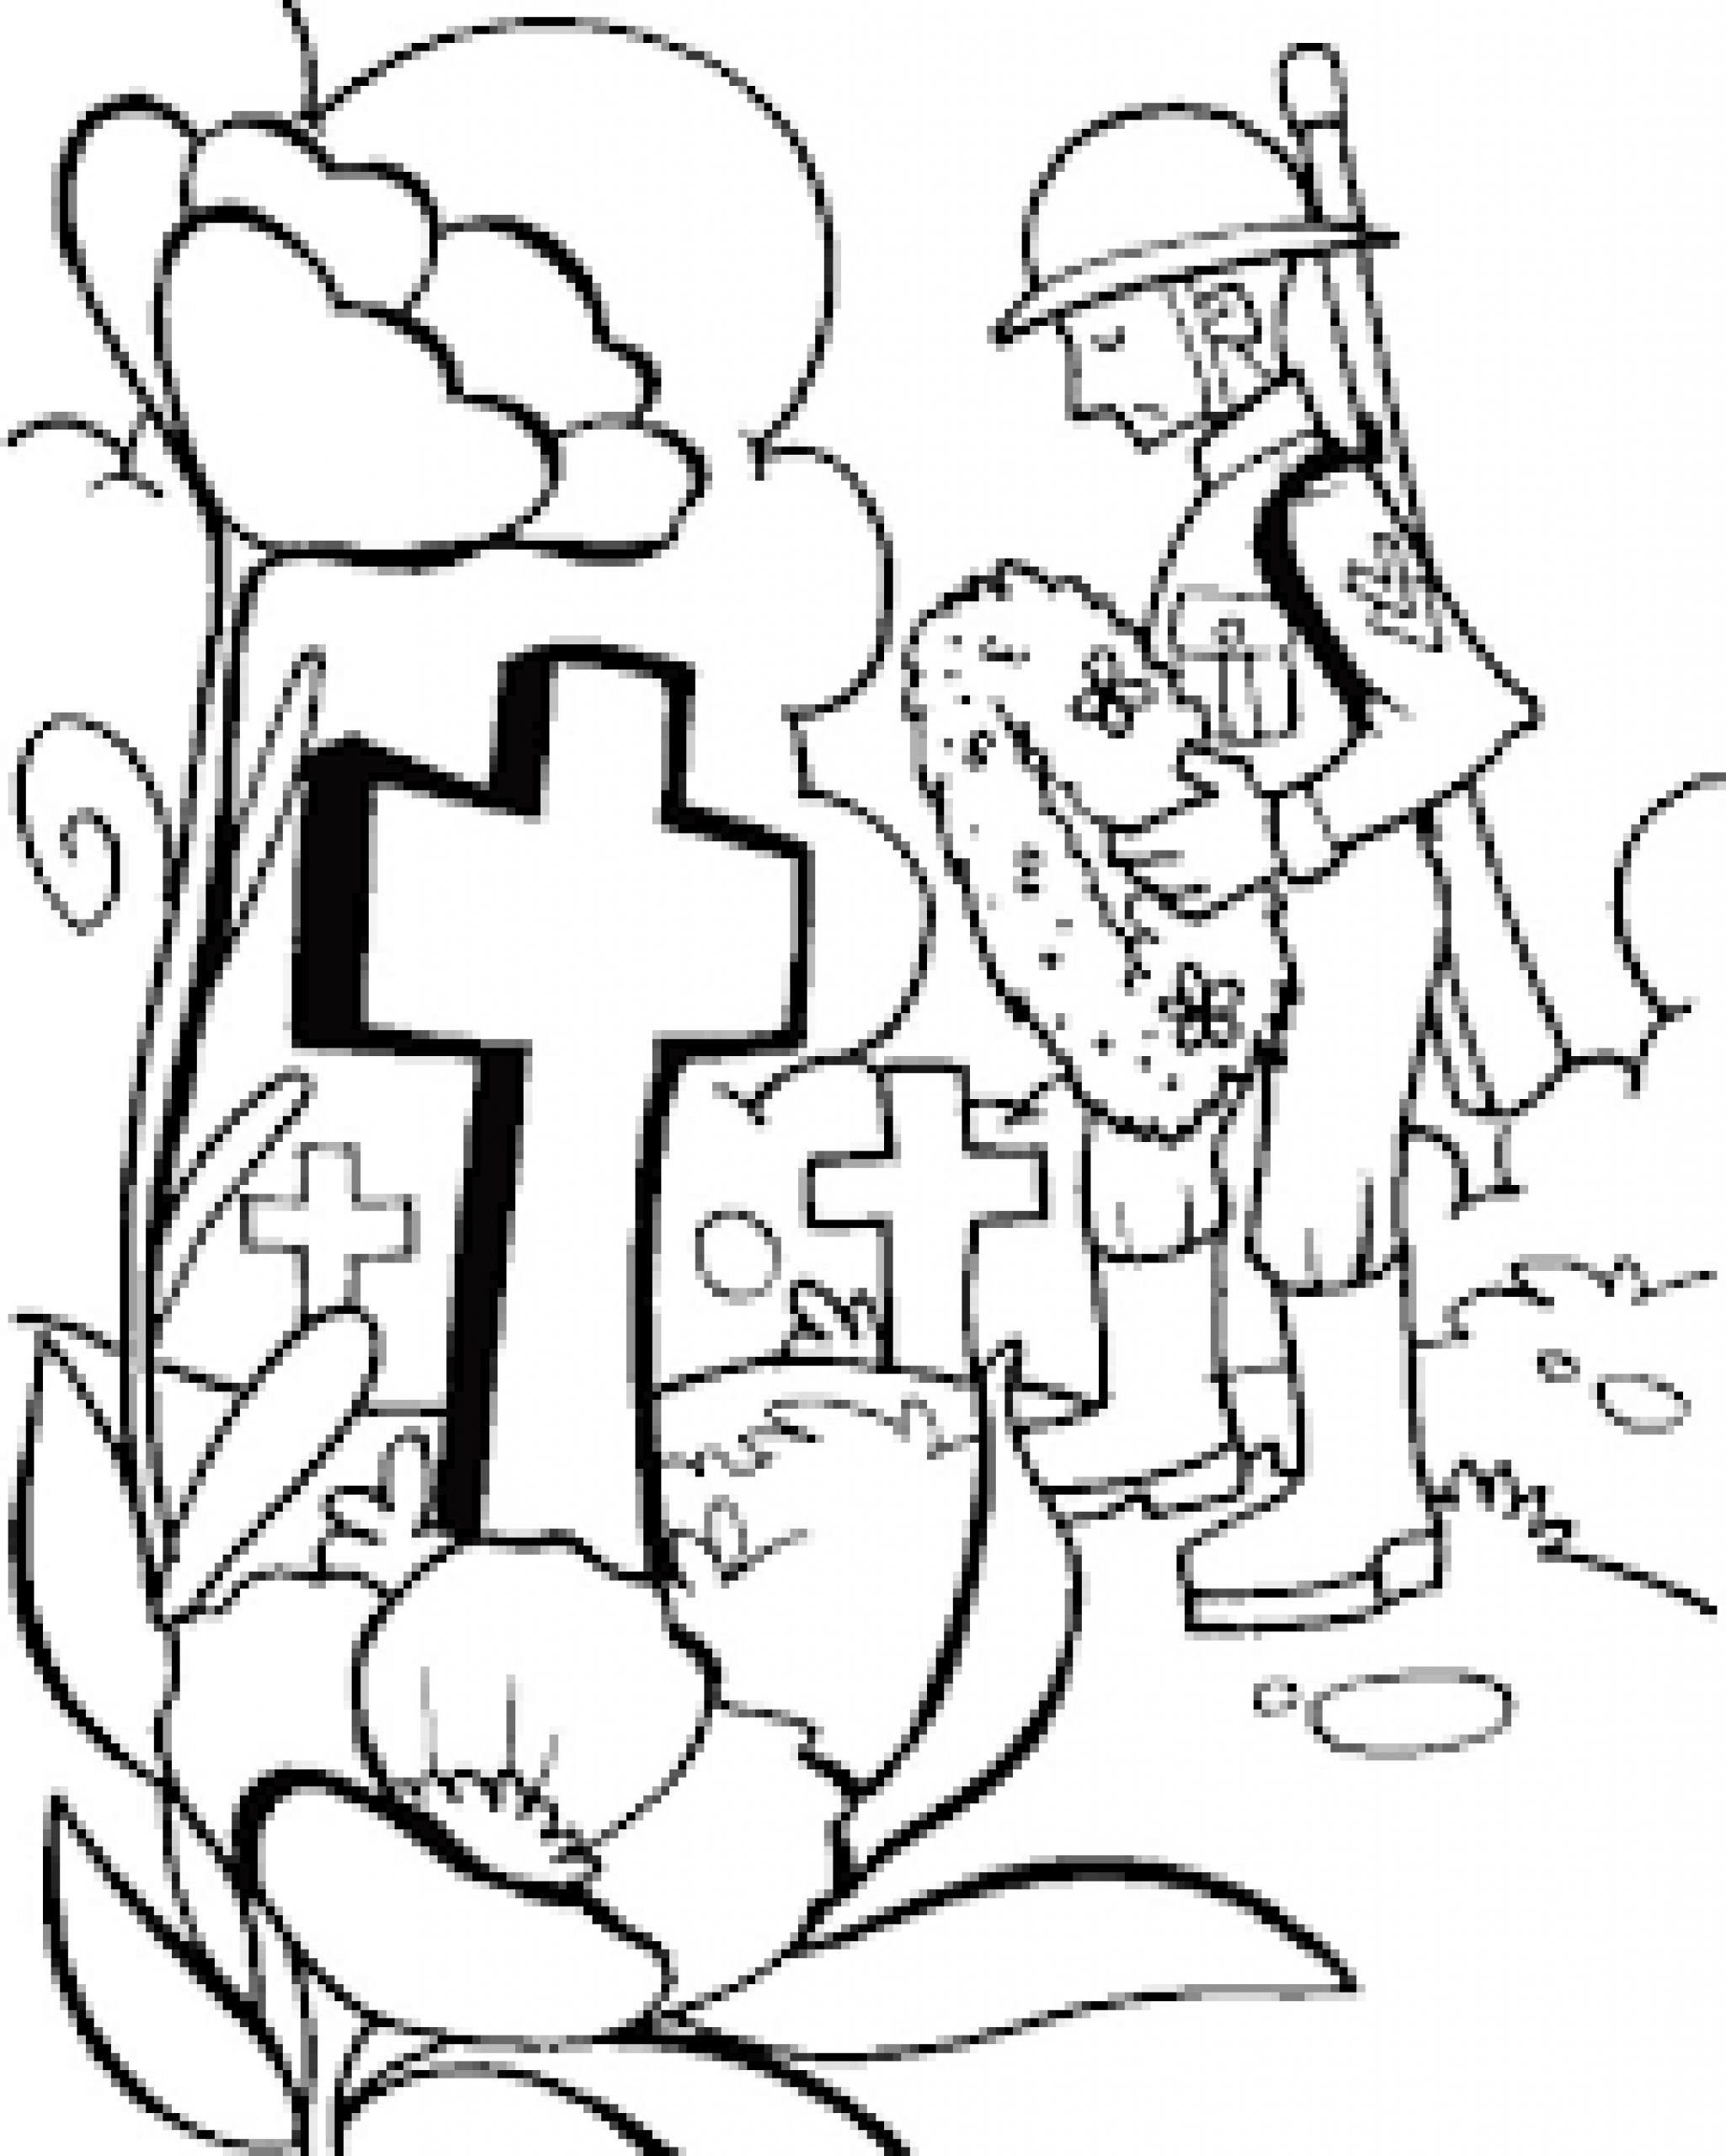 Printable Memorial Day Coloring Pages Free Printable Memorial Day Coloring Pages At Memorial Day Coloring Pages Veterans Day Coloring Page Poppy Coloring Page